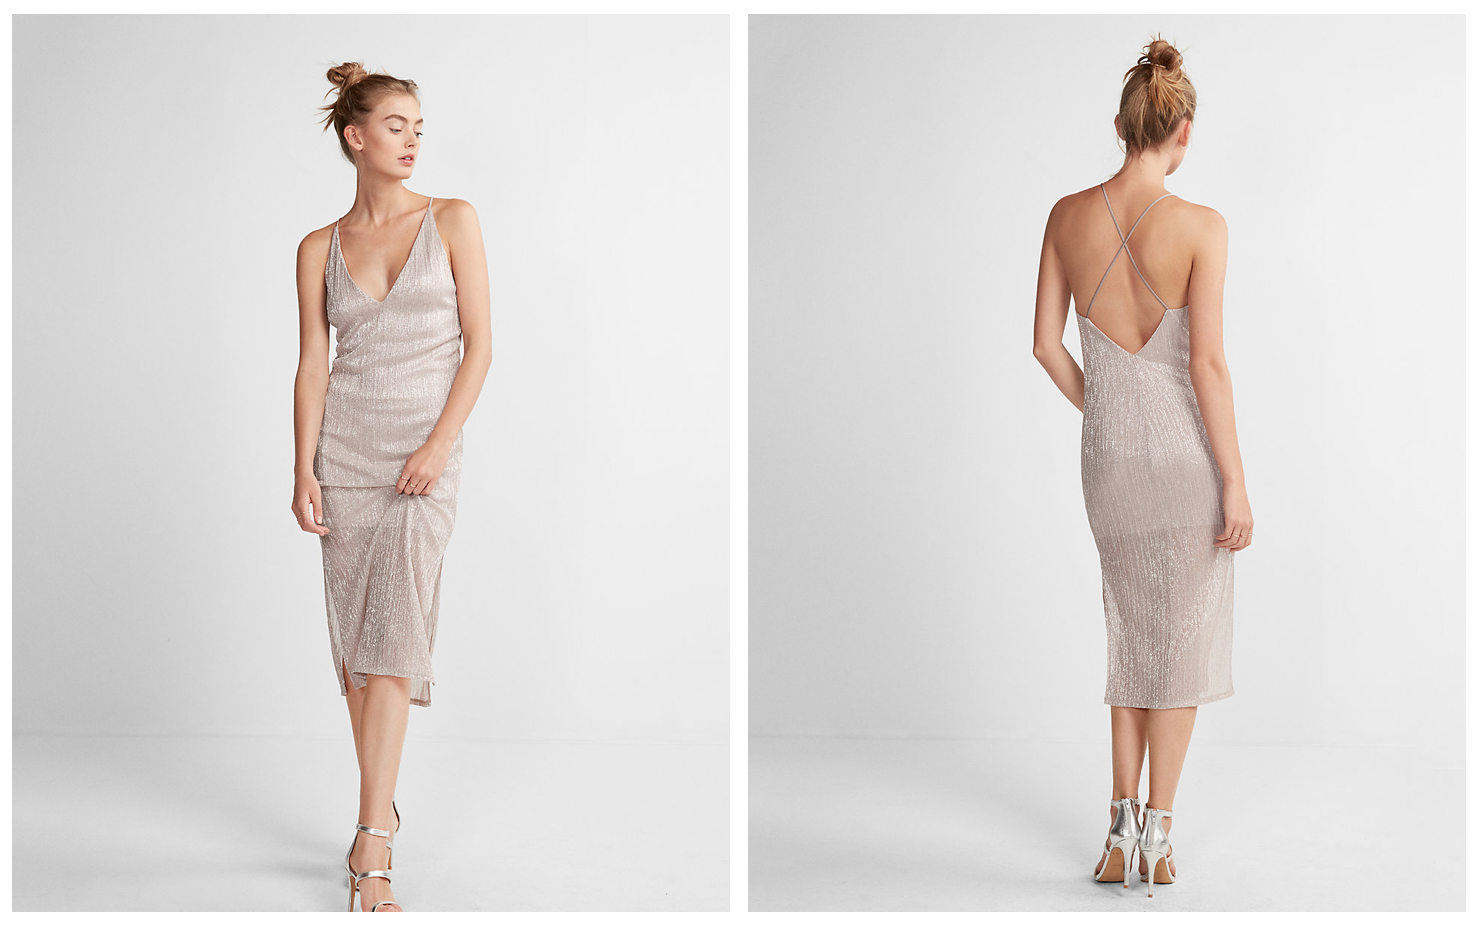 Express champagne colored dress